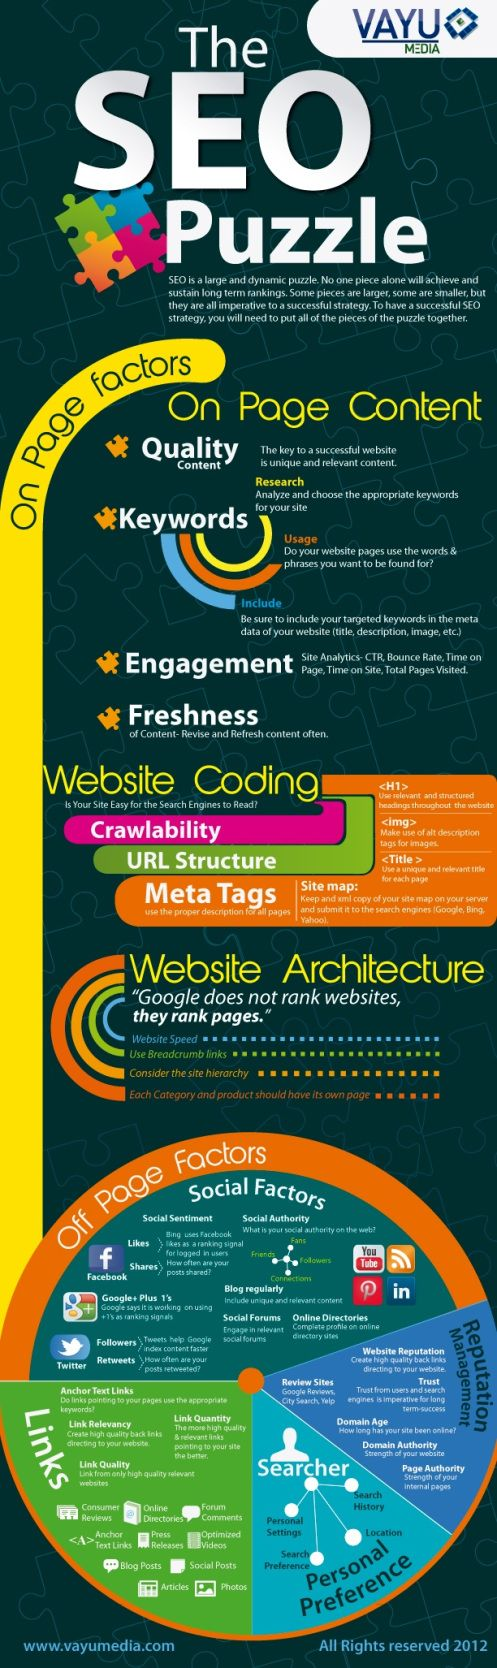 SEO | Searchability Very important tool! Come join the startup community: http://www.spark-labs.co/ #rseo #searchengineoptimization #infographic @purposeadvertising